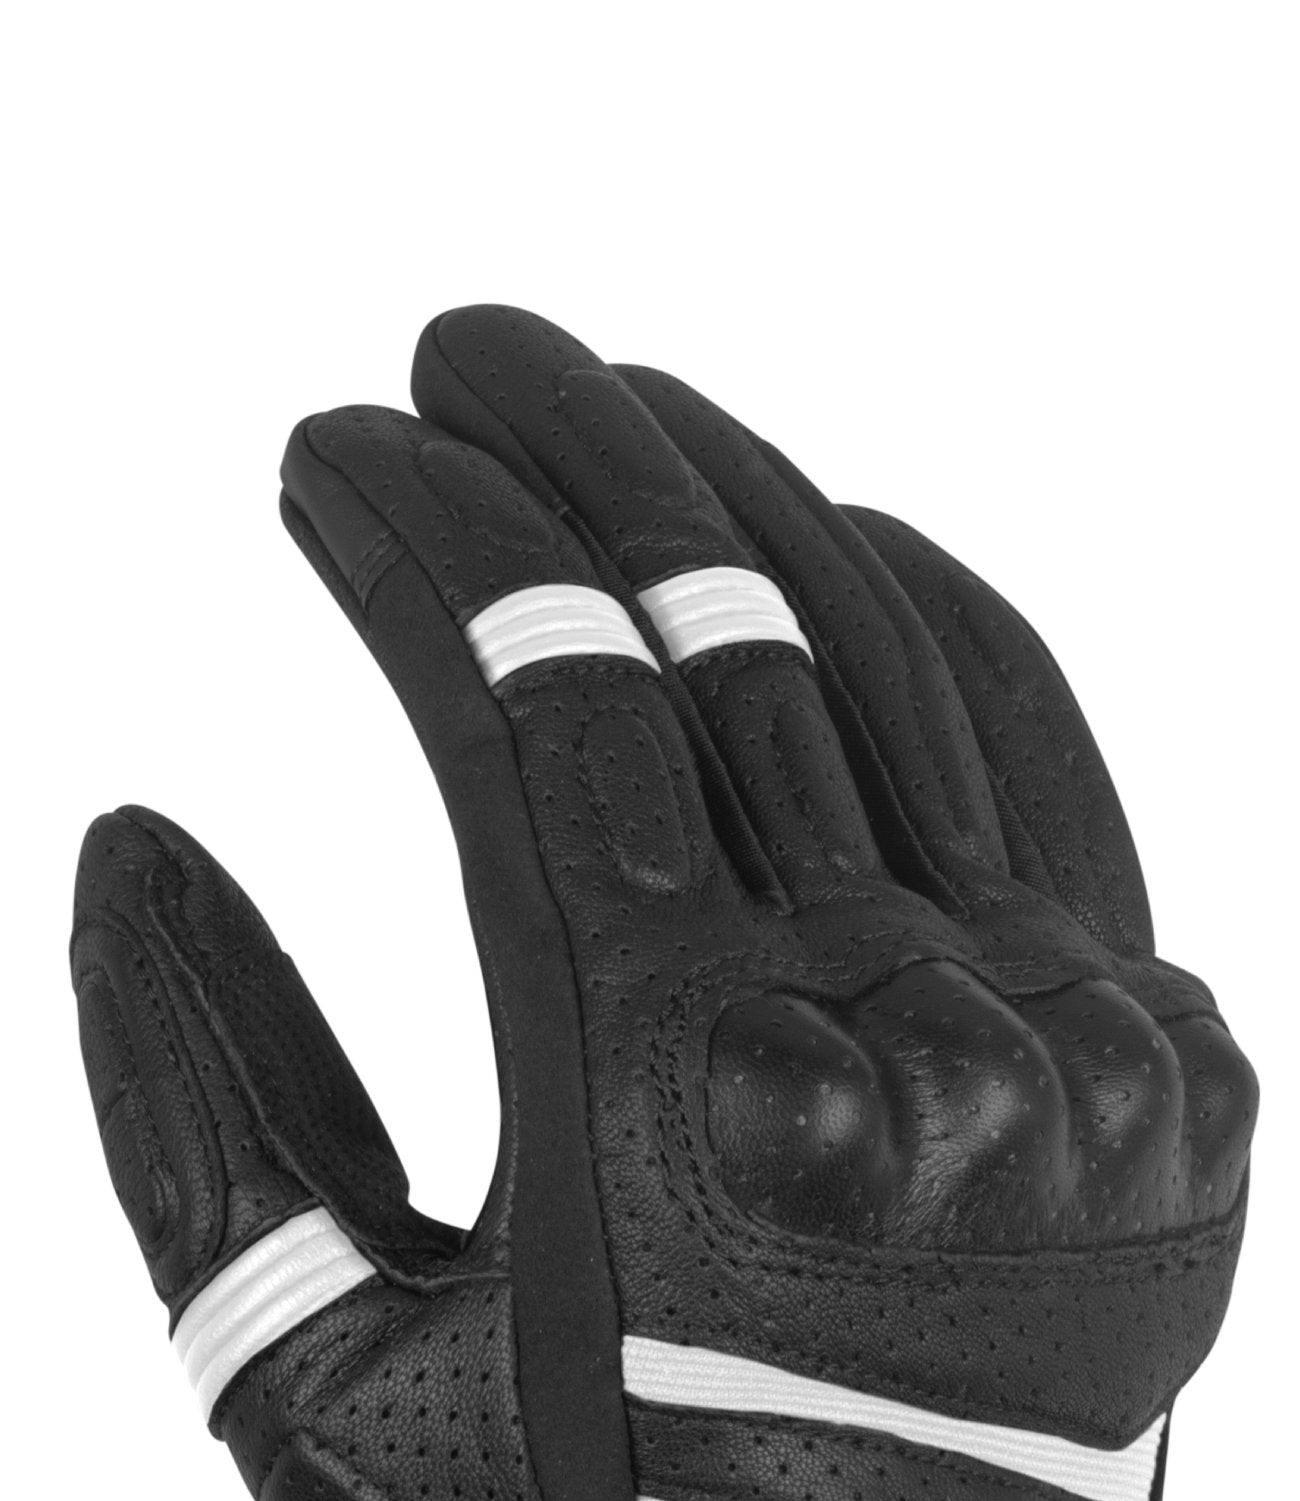 Rynox Air GT Gloves Black White  5